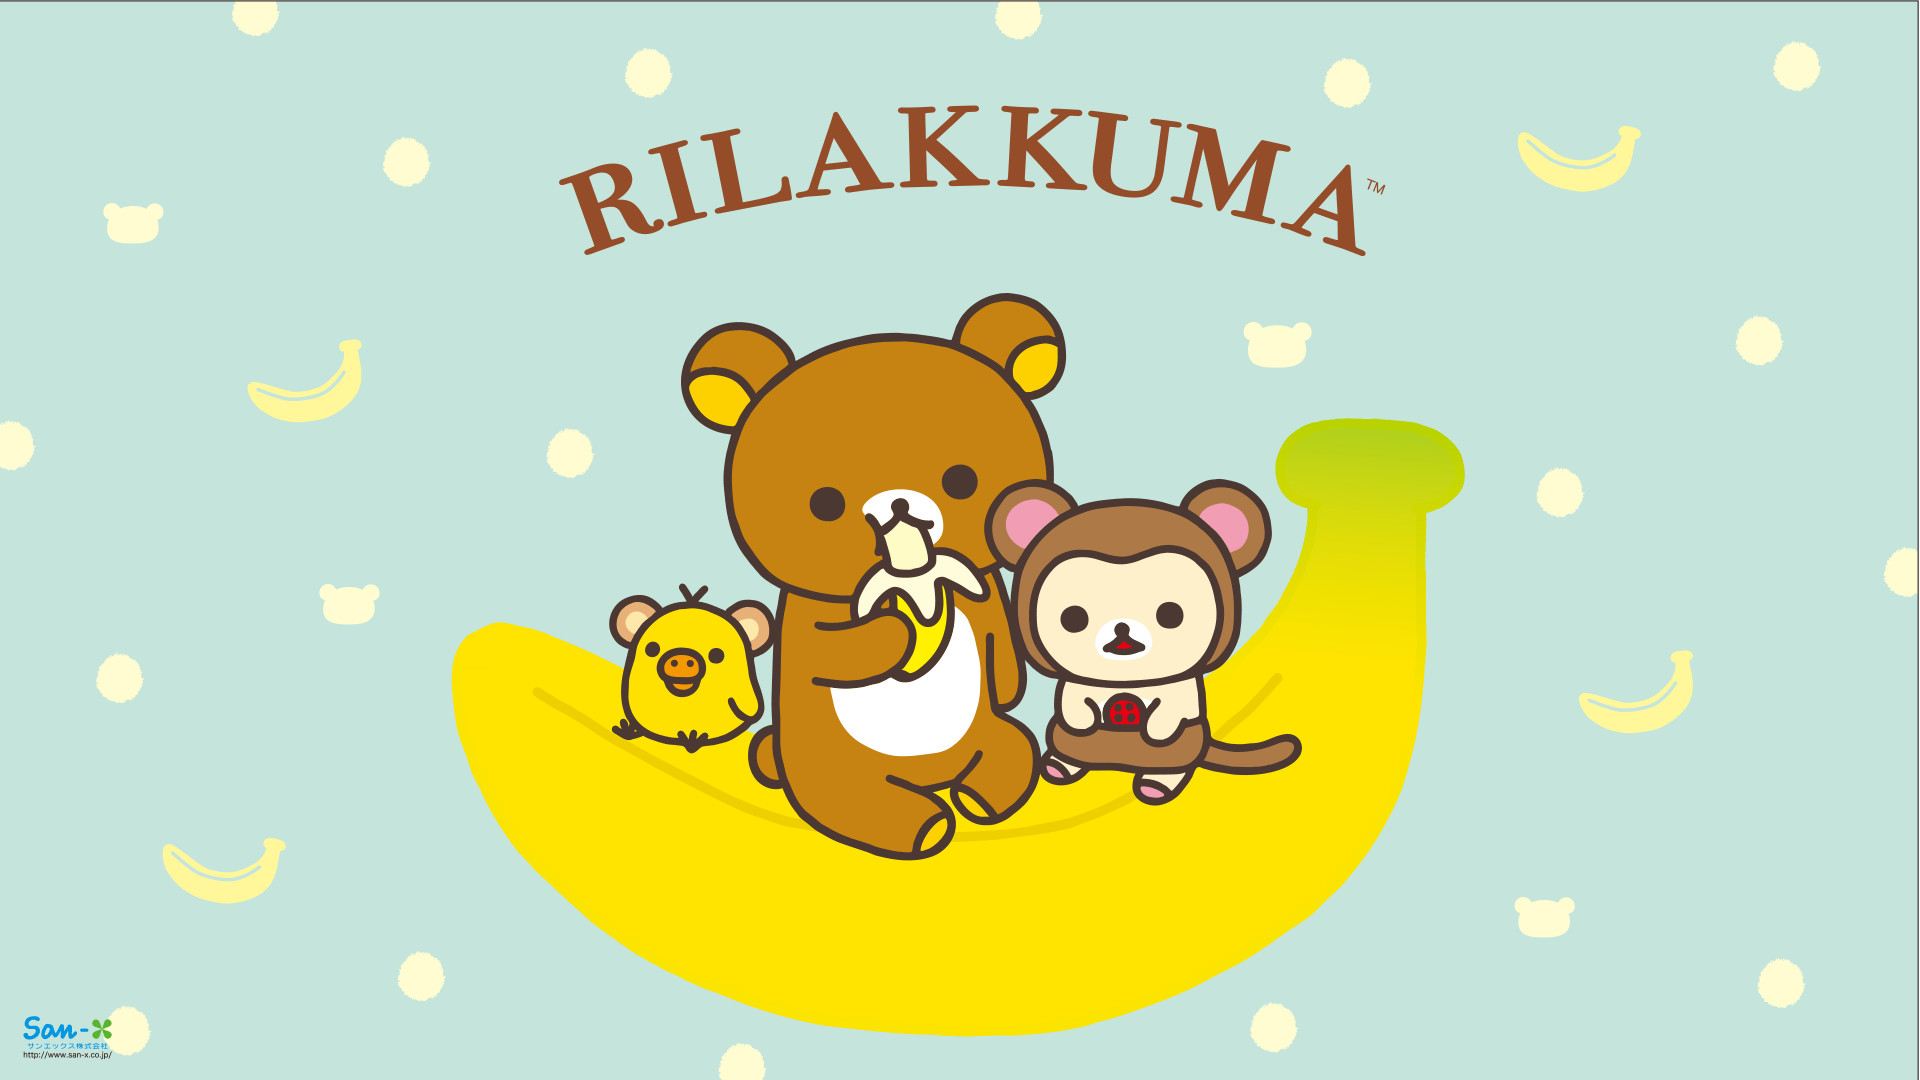 Res: 1920x1080, Monkey Rilakkuma Wallpaper